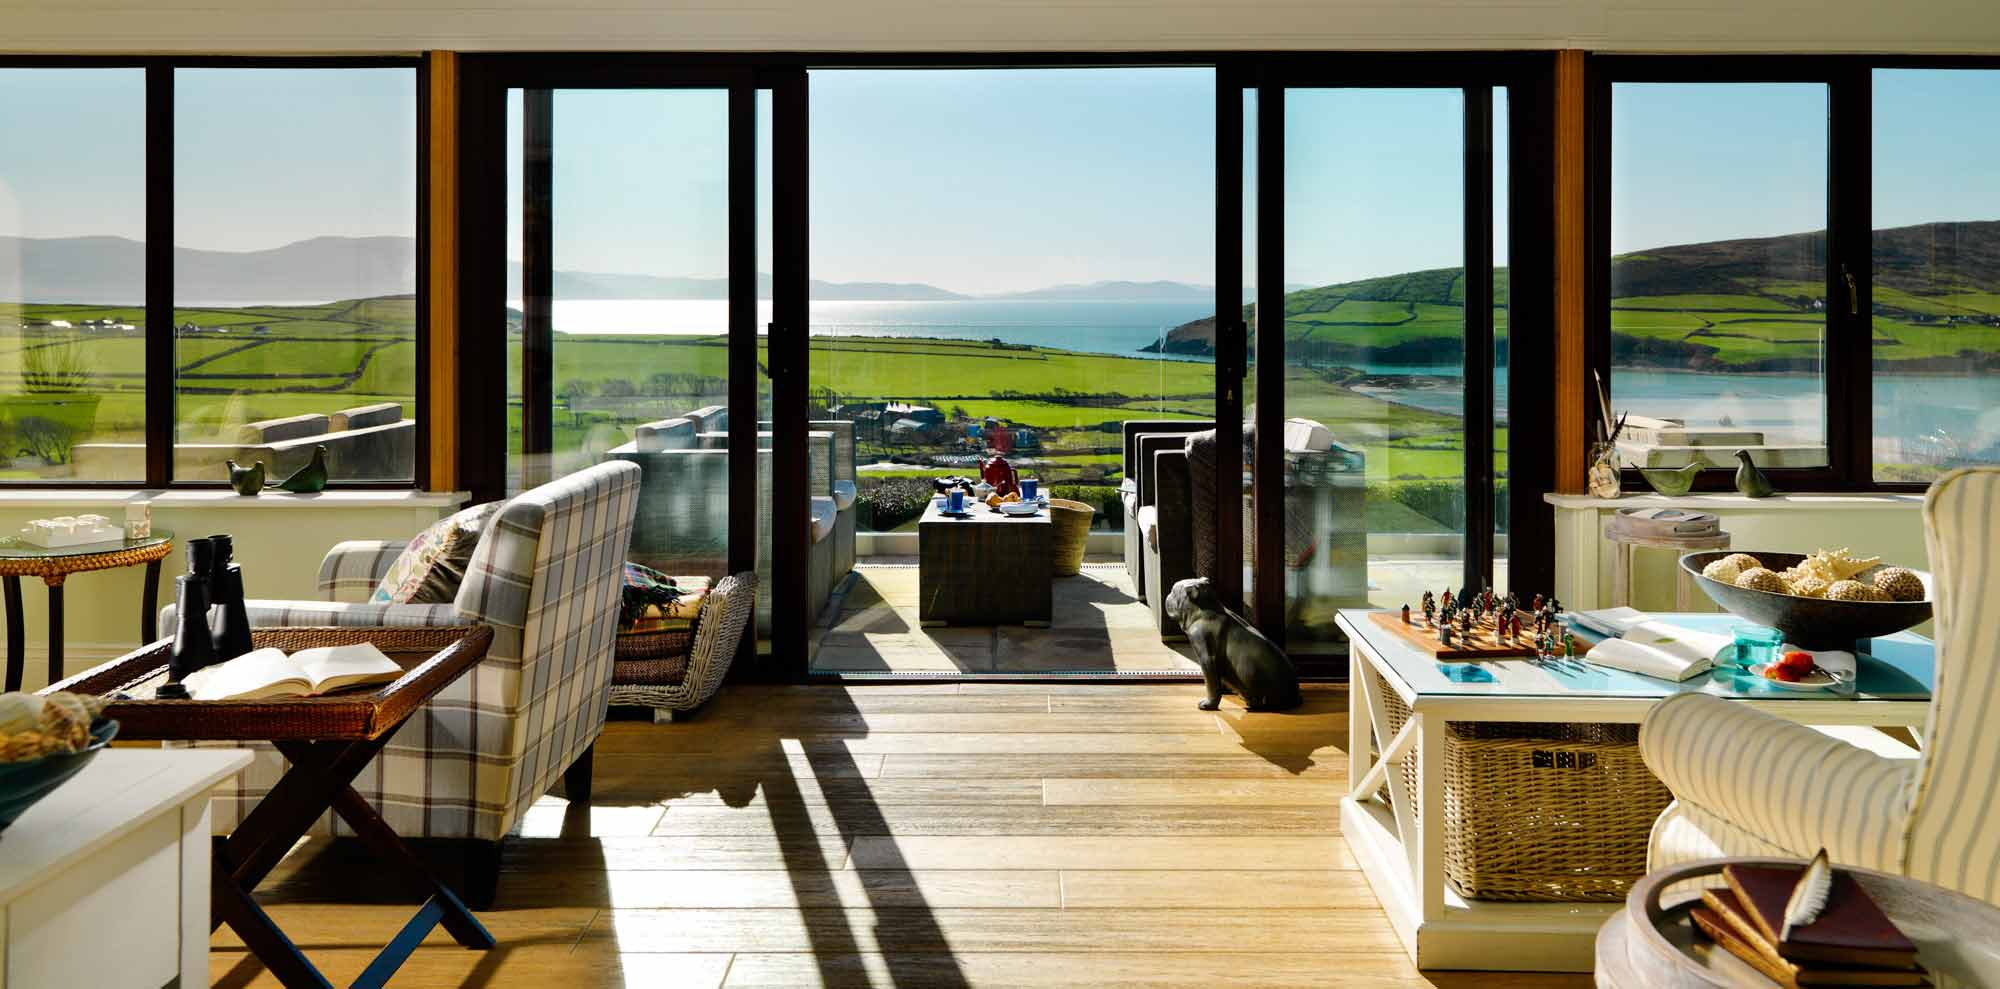 Pax Guest House overlooking Dingle Bay